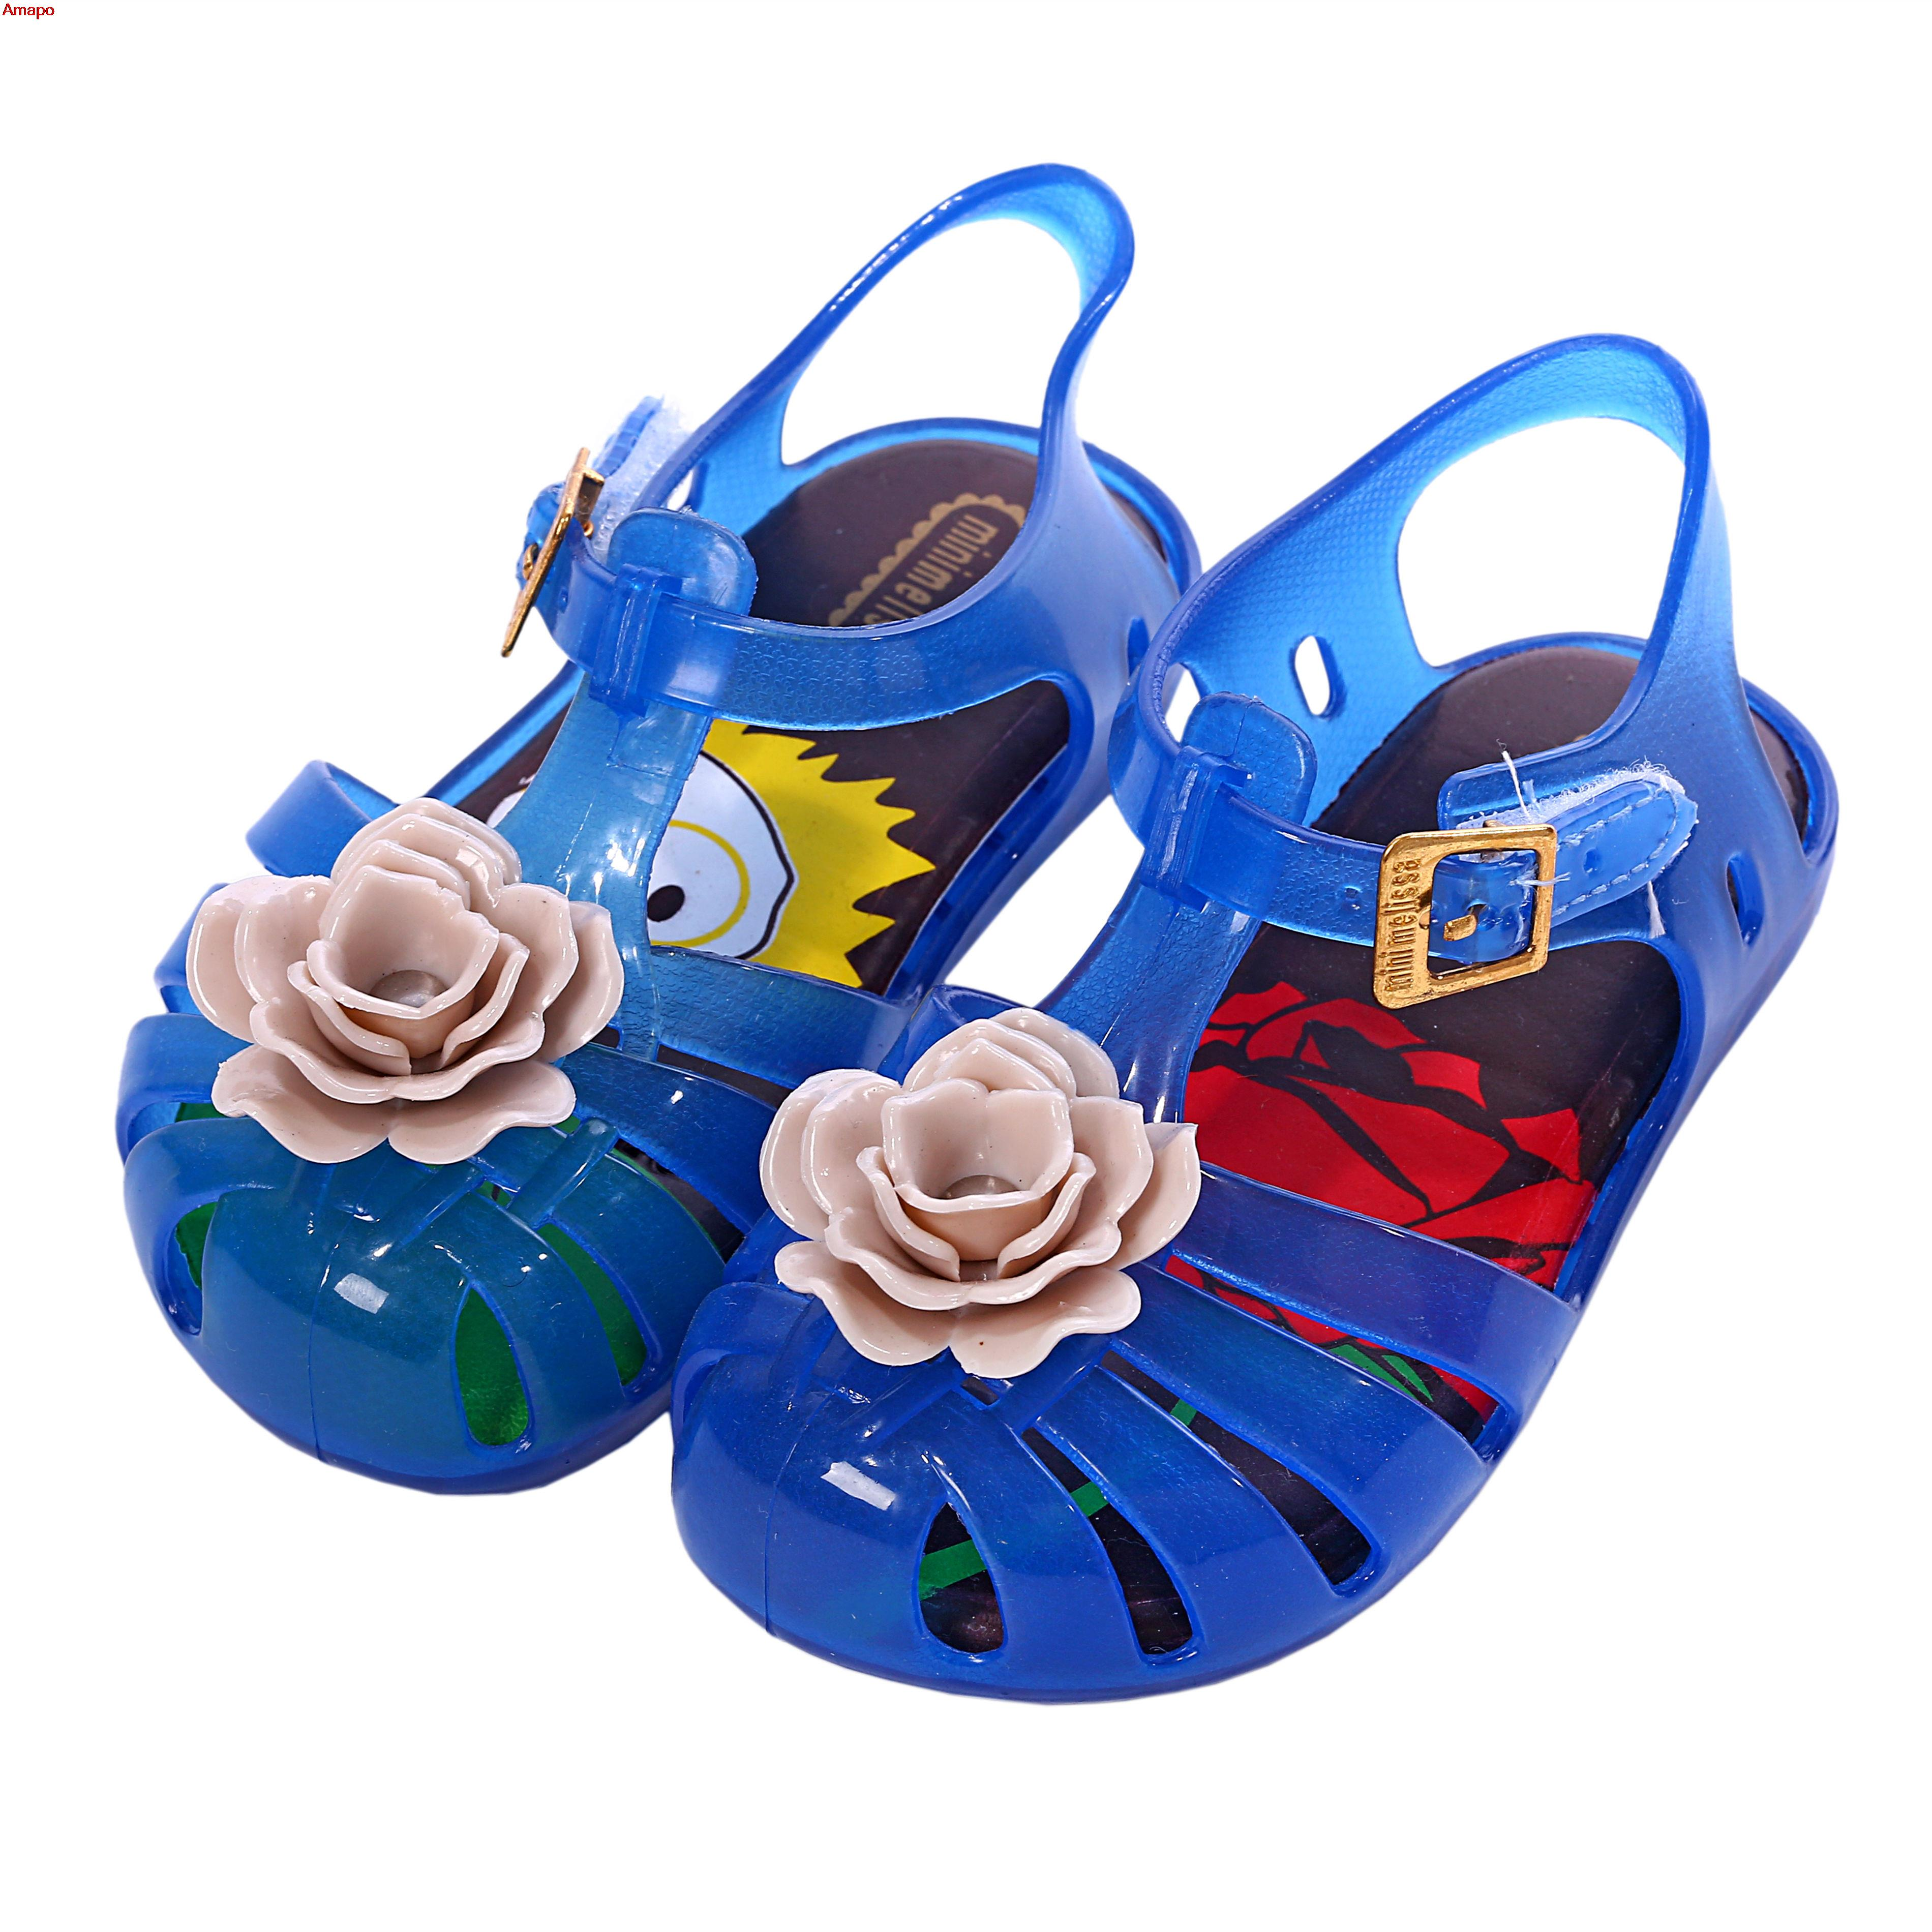 RIAROSA 2016 new Girls Sandals rose flower style baby shoes Jelly print insole PVS Shoe 4 color choices Size 6-11(China (Mainland))